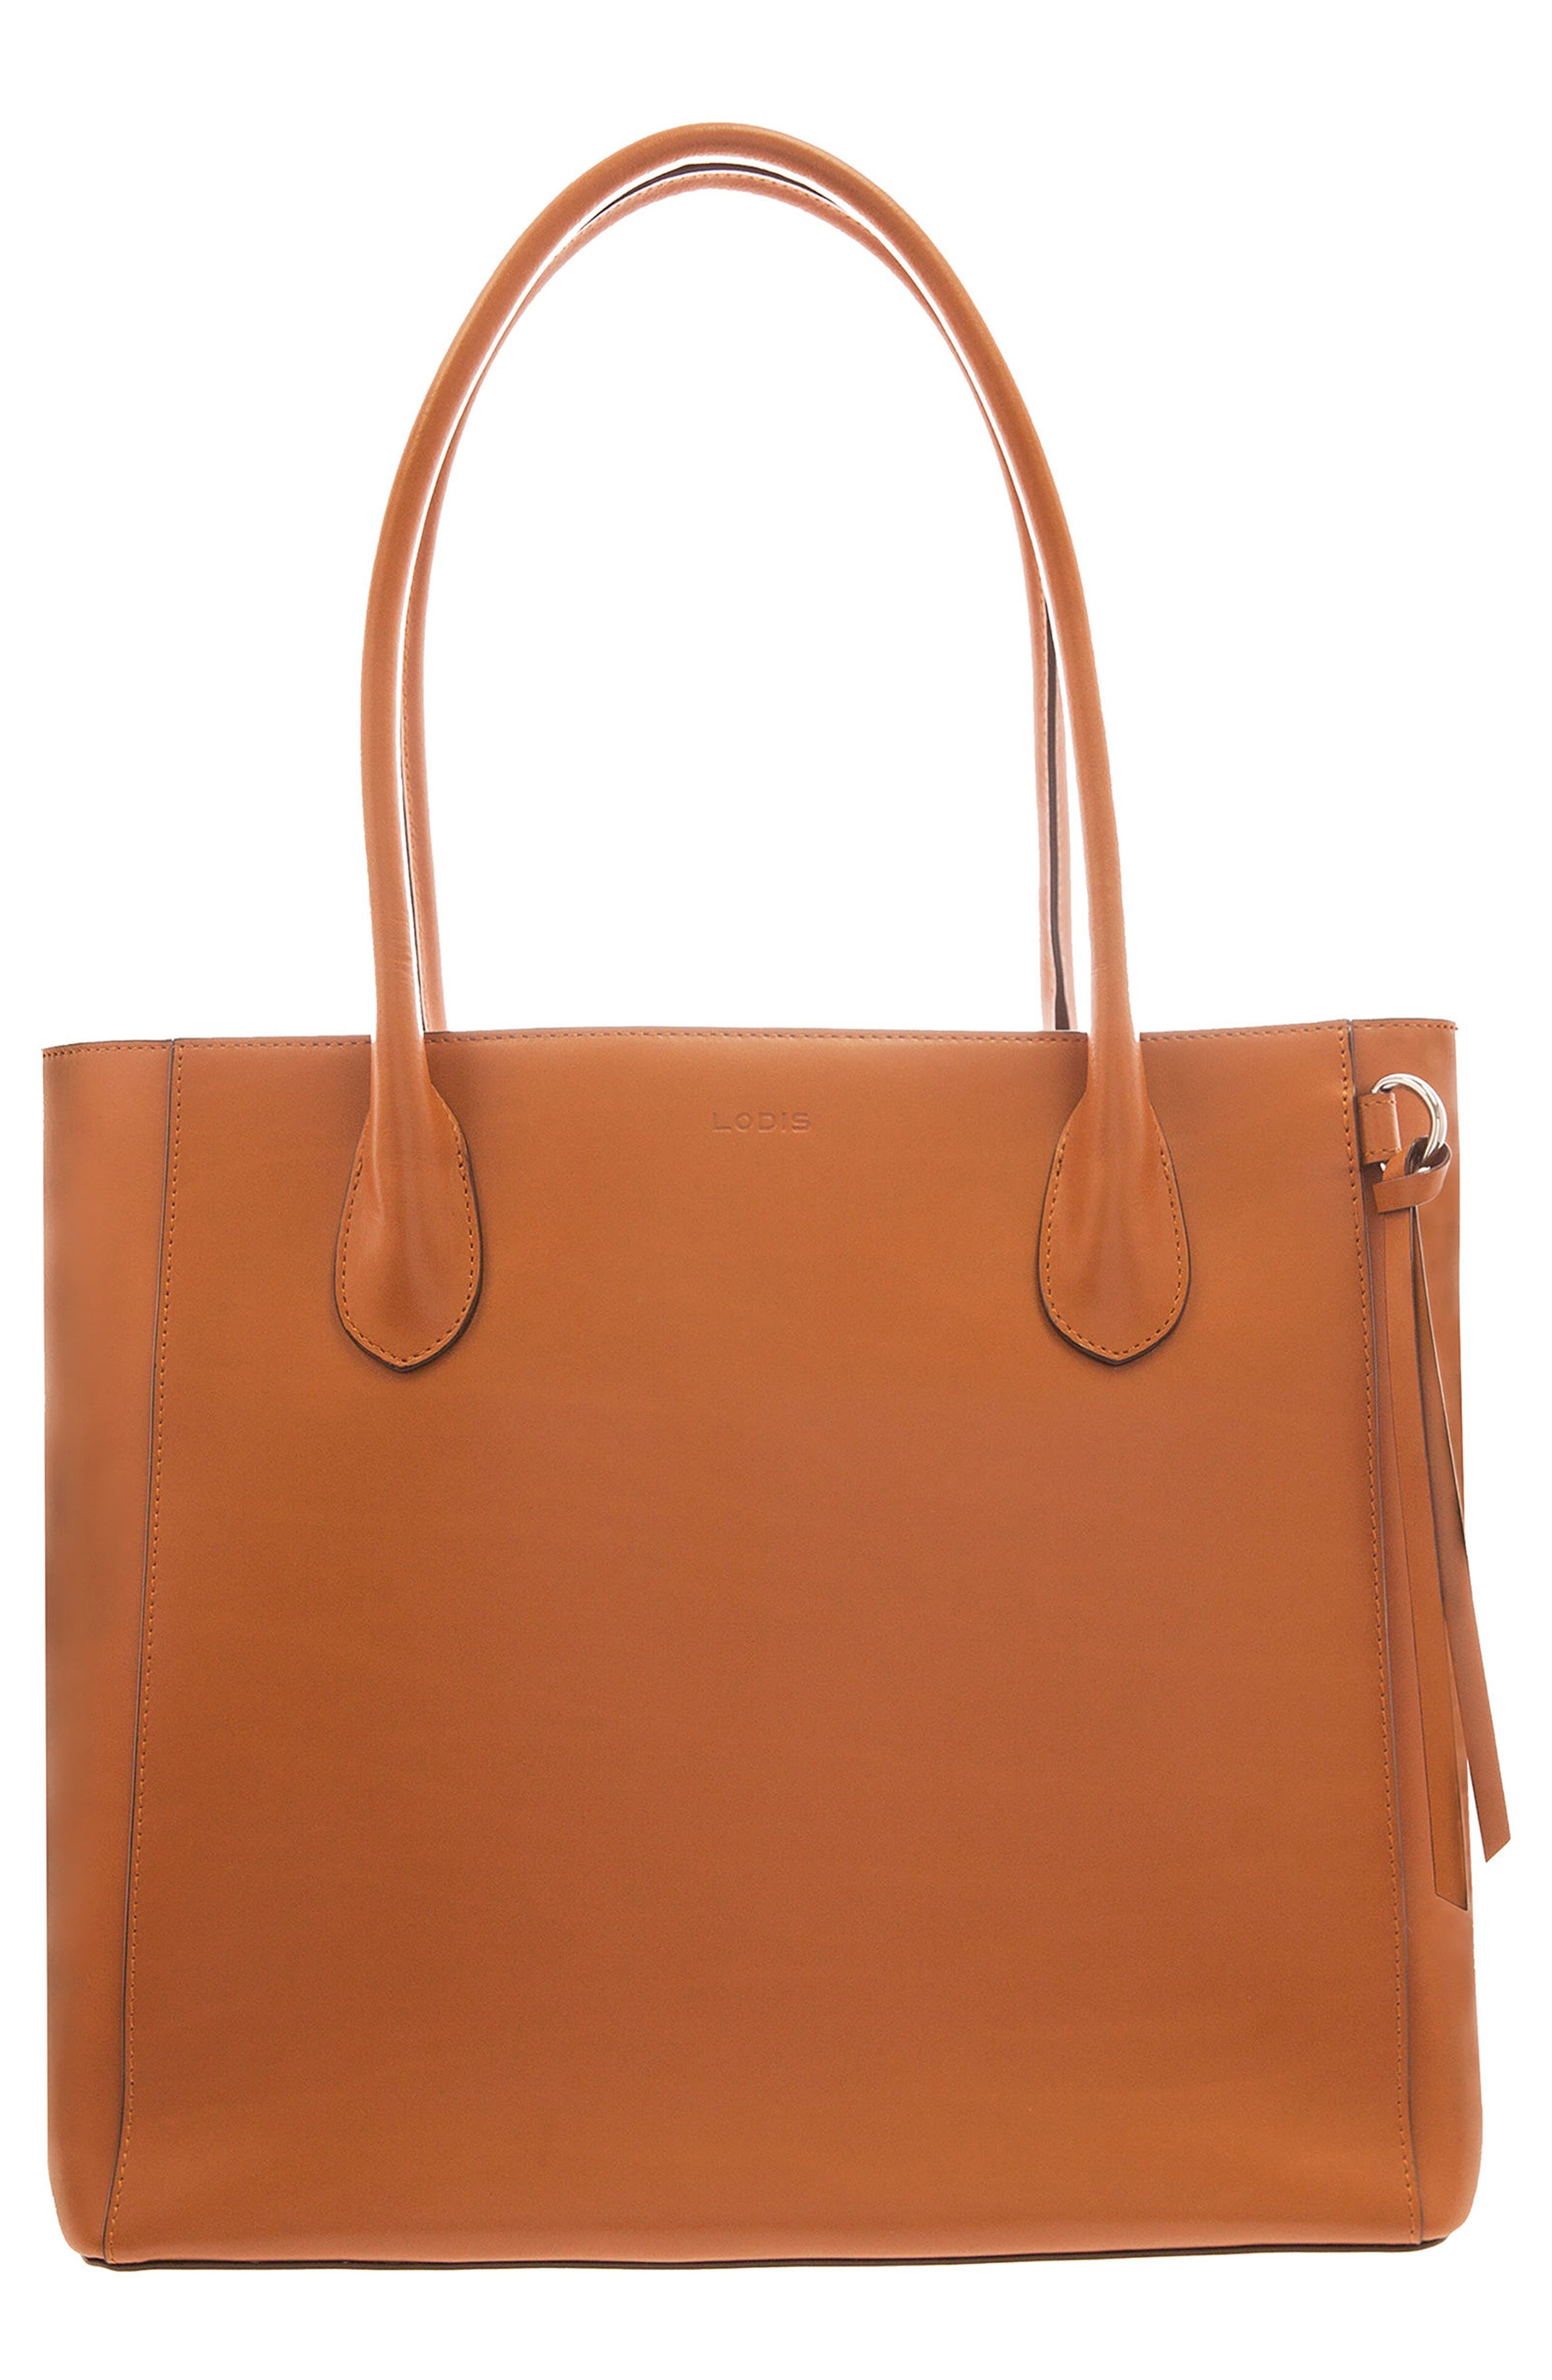 Cecily RFID Leather Tote,                             Main thumbnail 1, color,                             Toffee